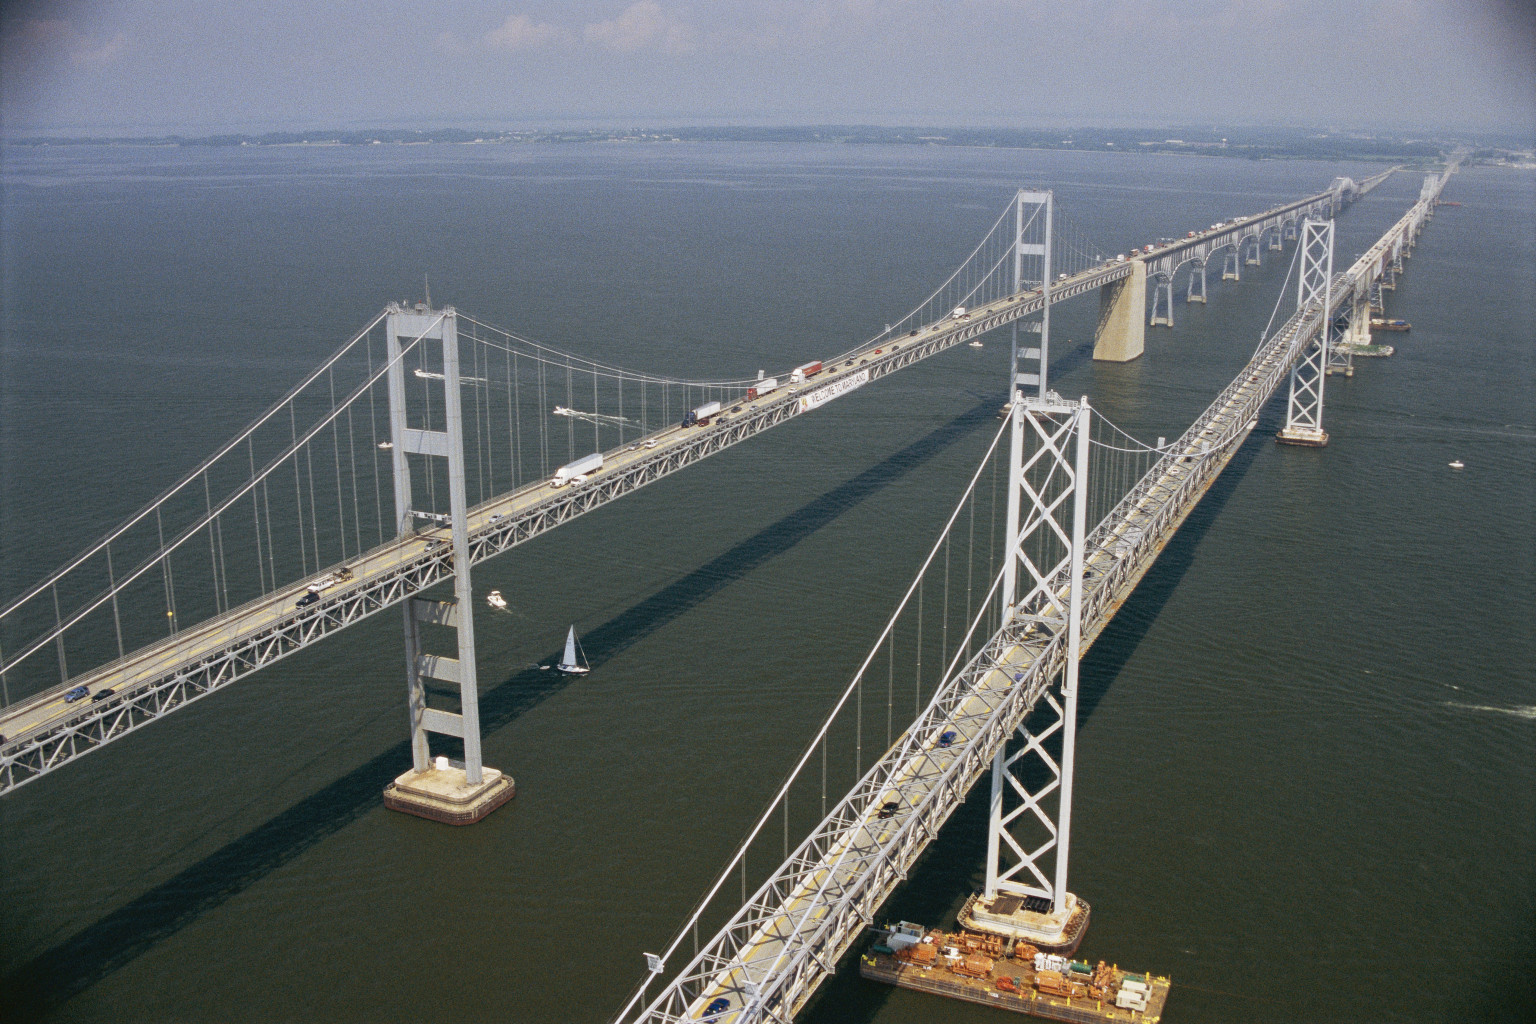 Full size image: The Chesapeake Bay Bridge